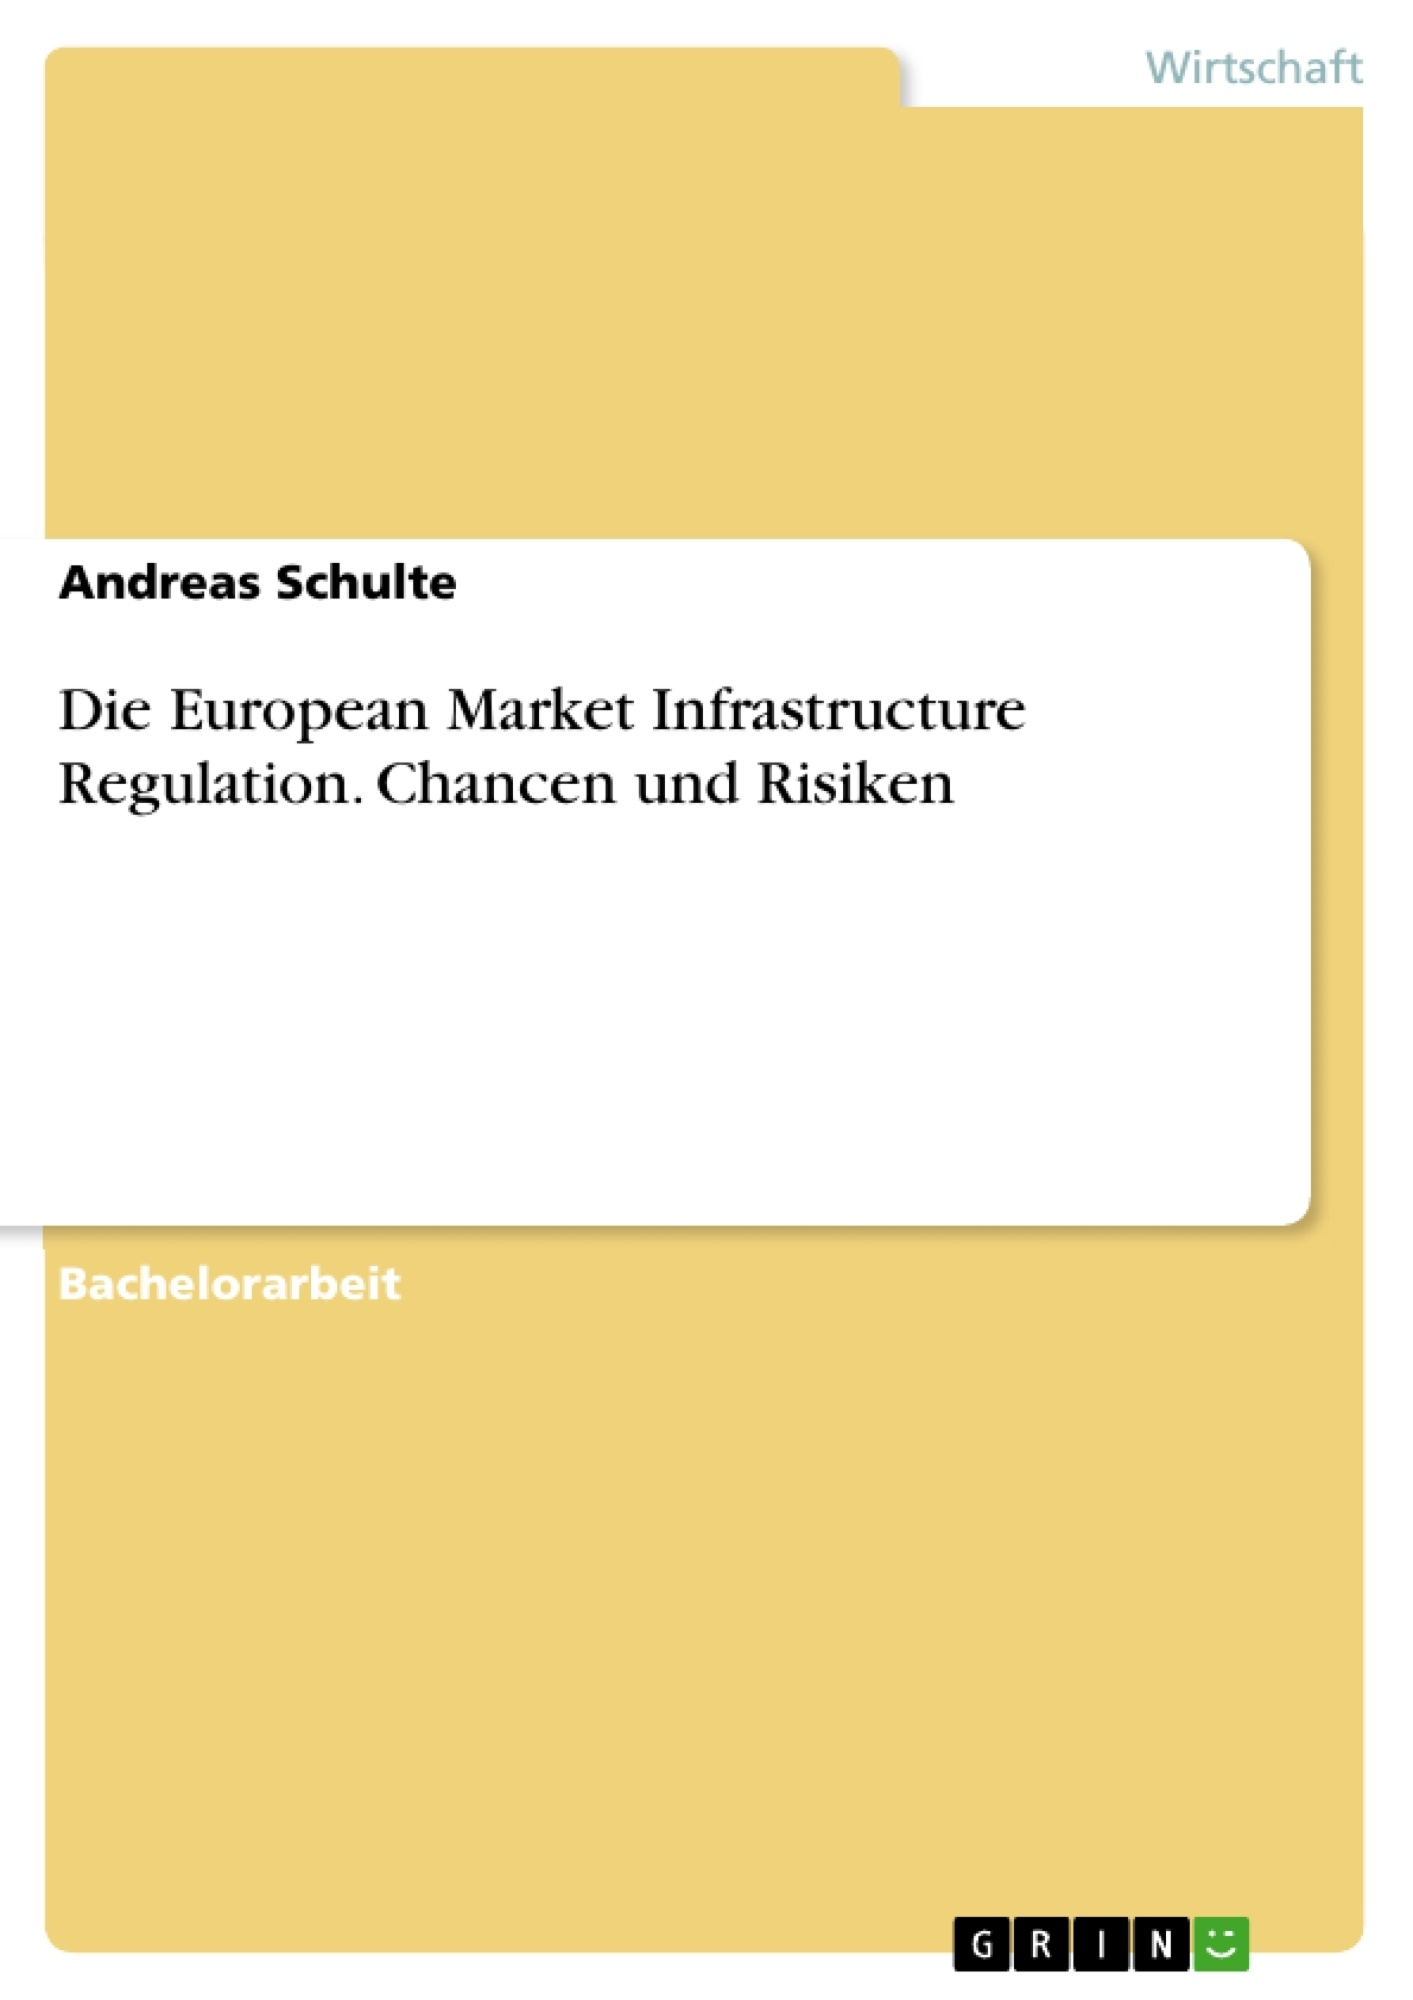 Titel: Die European Market Infrastructure Regulation. Chancen und Risiken